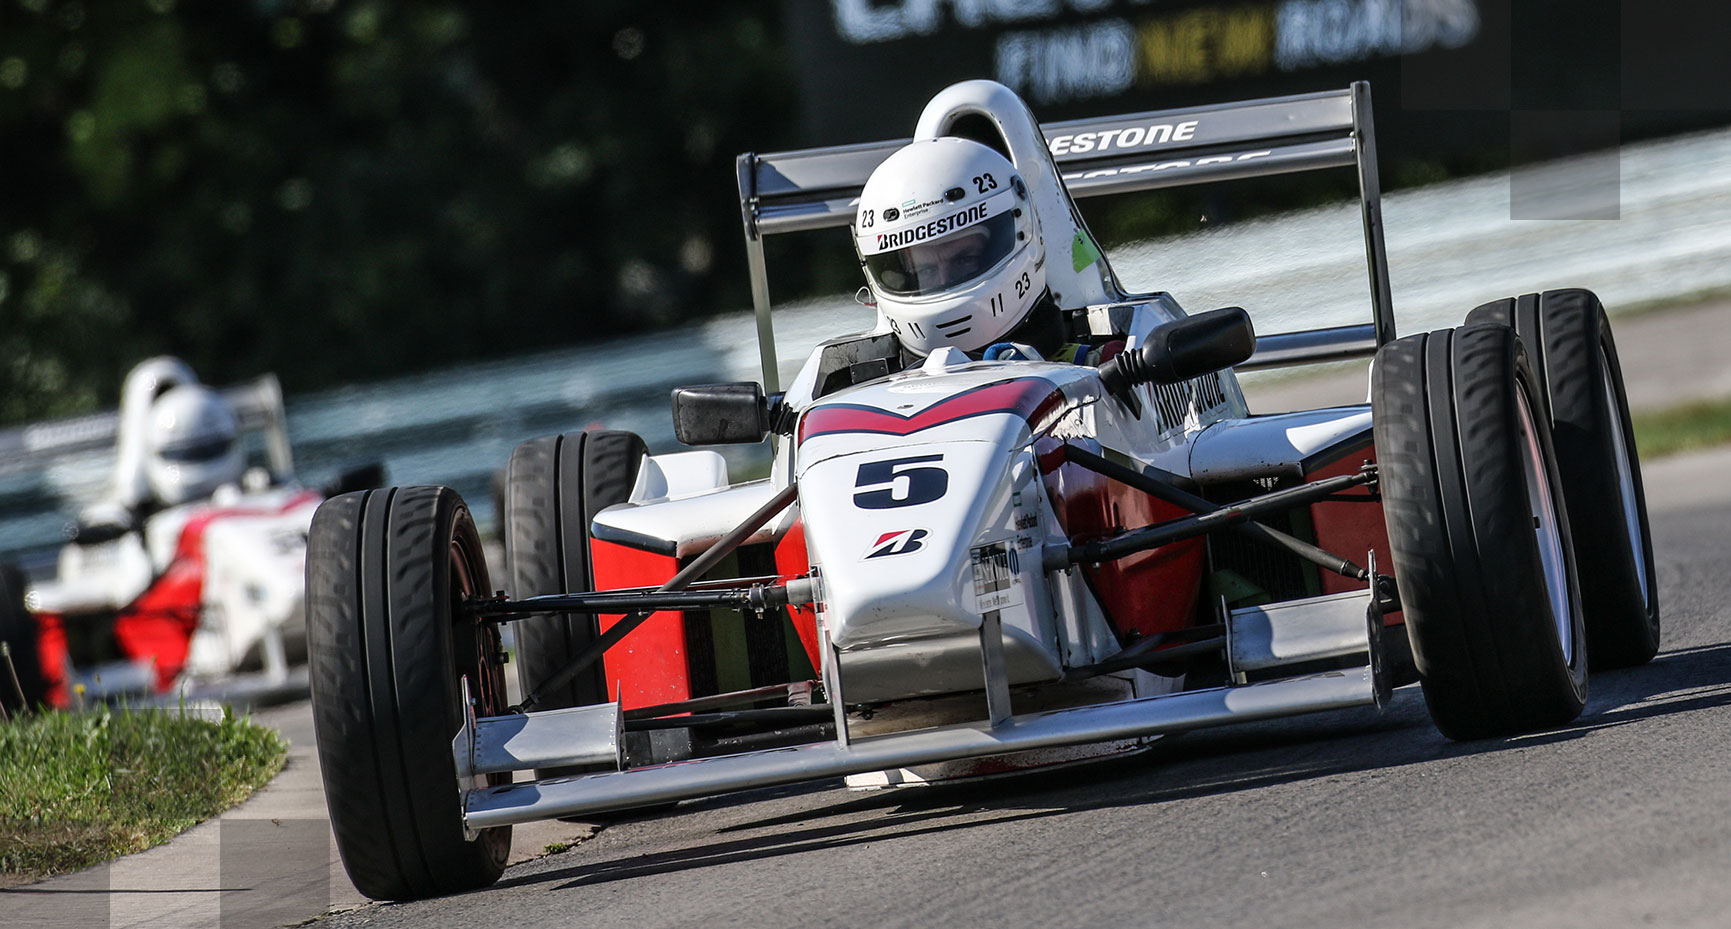 Formula One racing schools in the USA